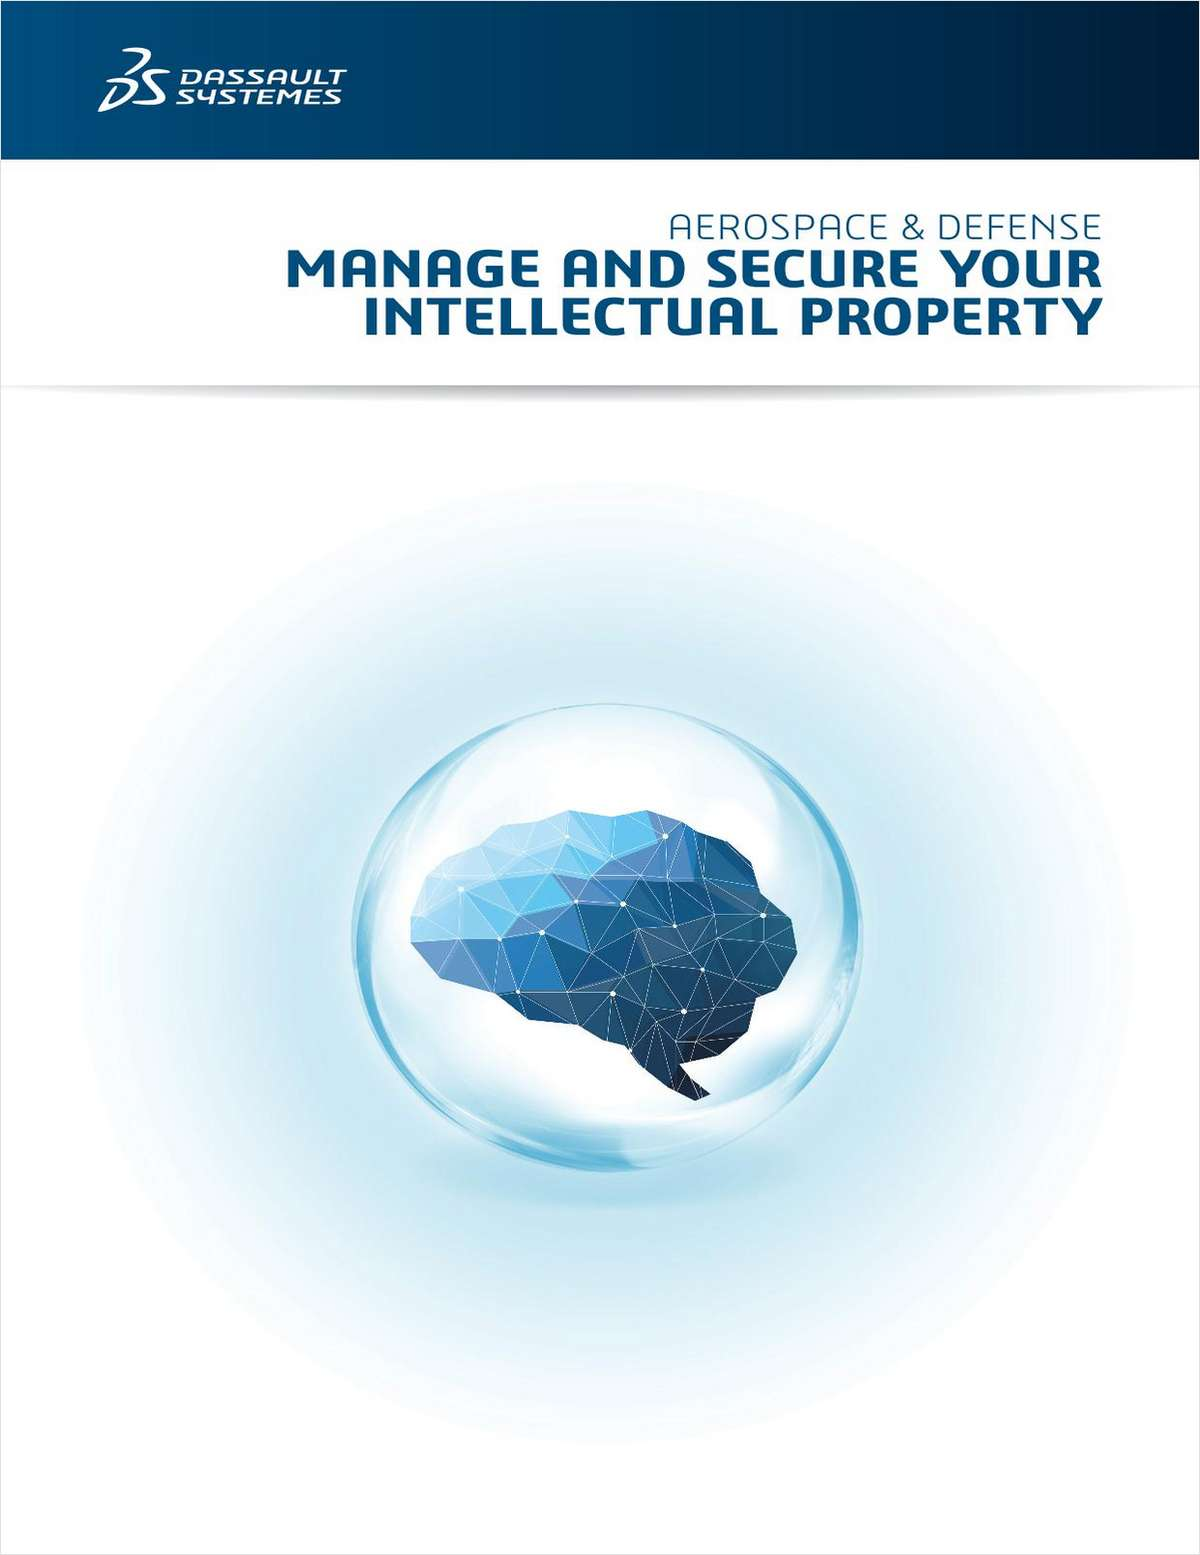 AEROSPACE & DEFENSE: MANAGE AND SECURE YOUR INTELLECTUAL PROPERTY